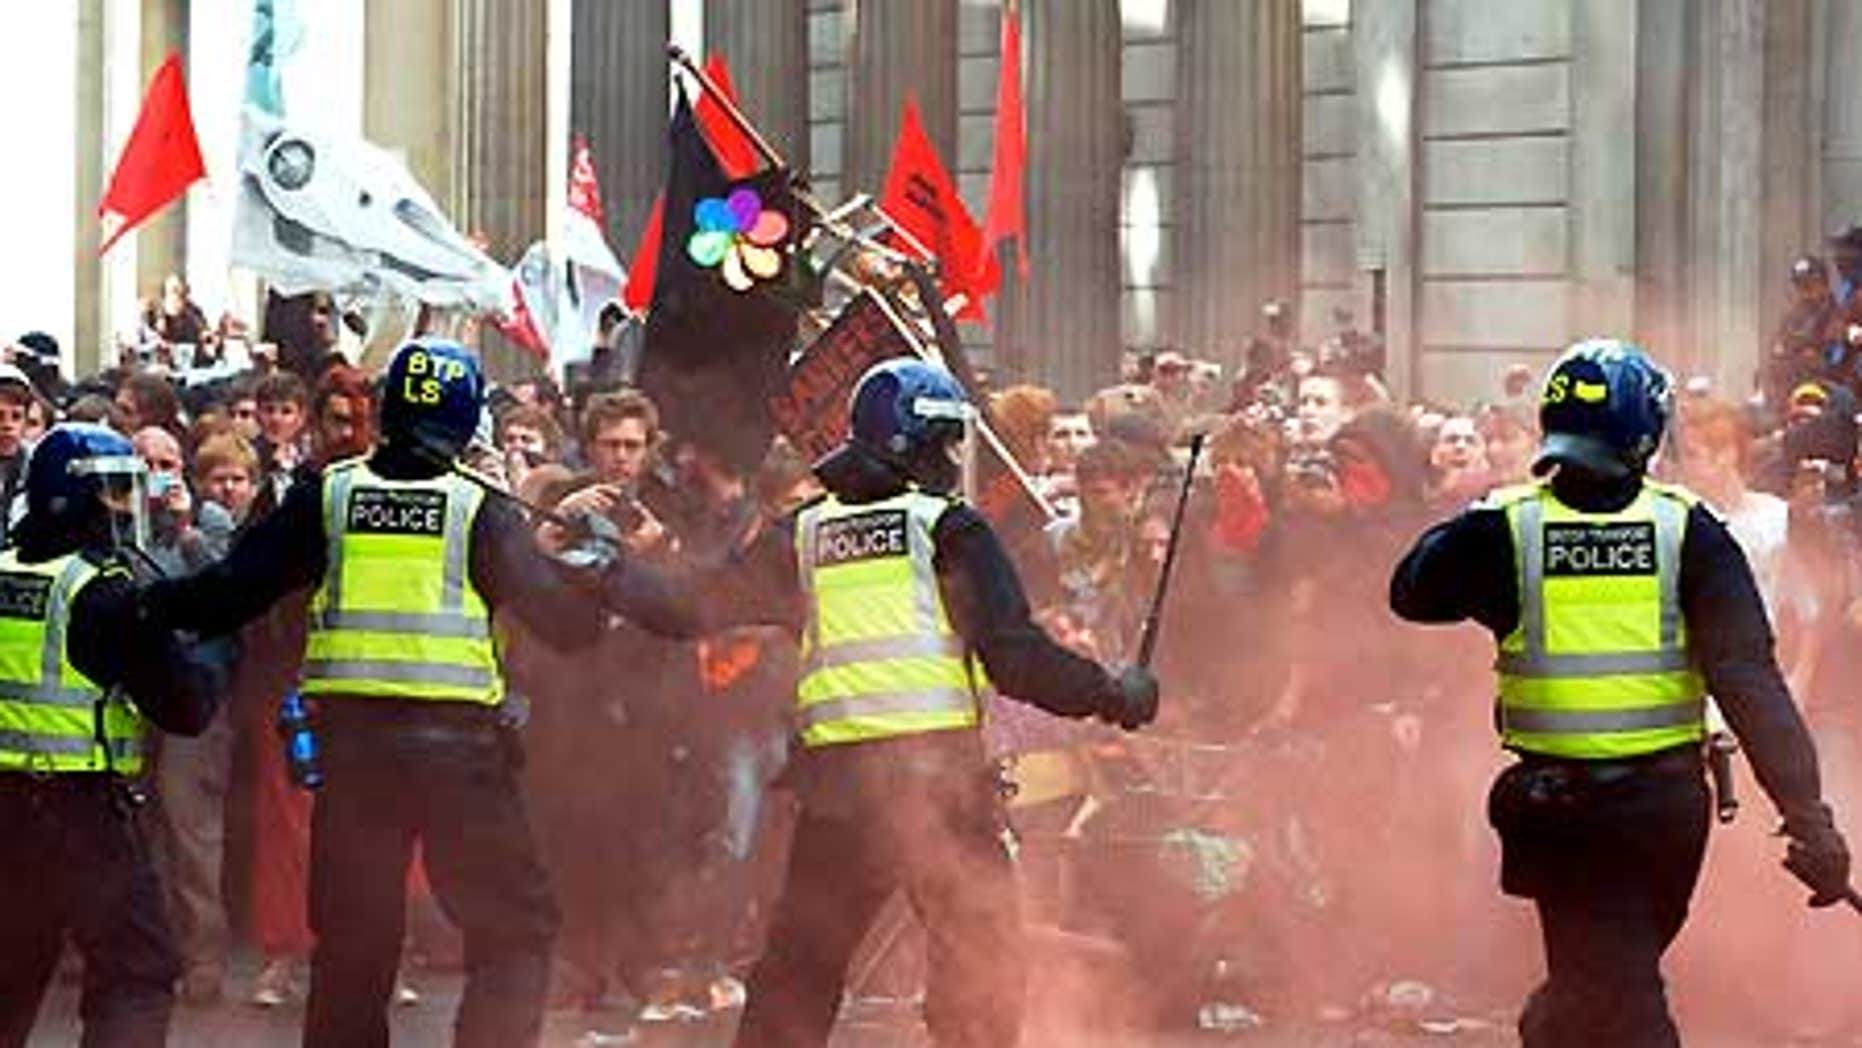 April 1: Riot police confront protesters near the Bank of England in London.